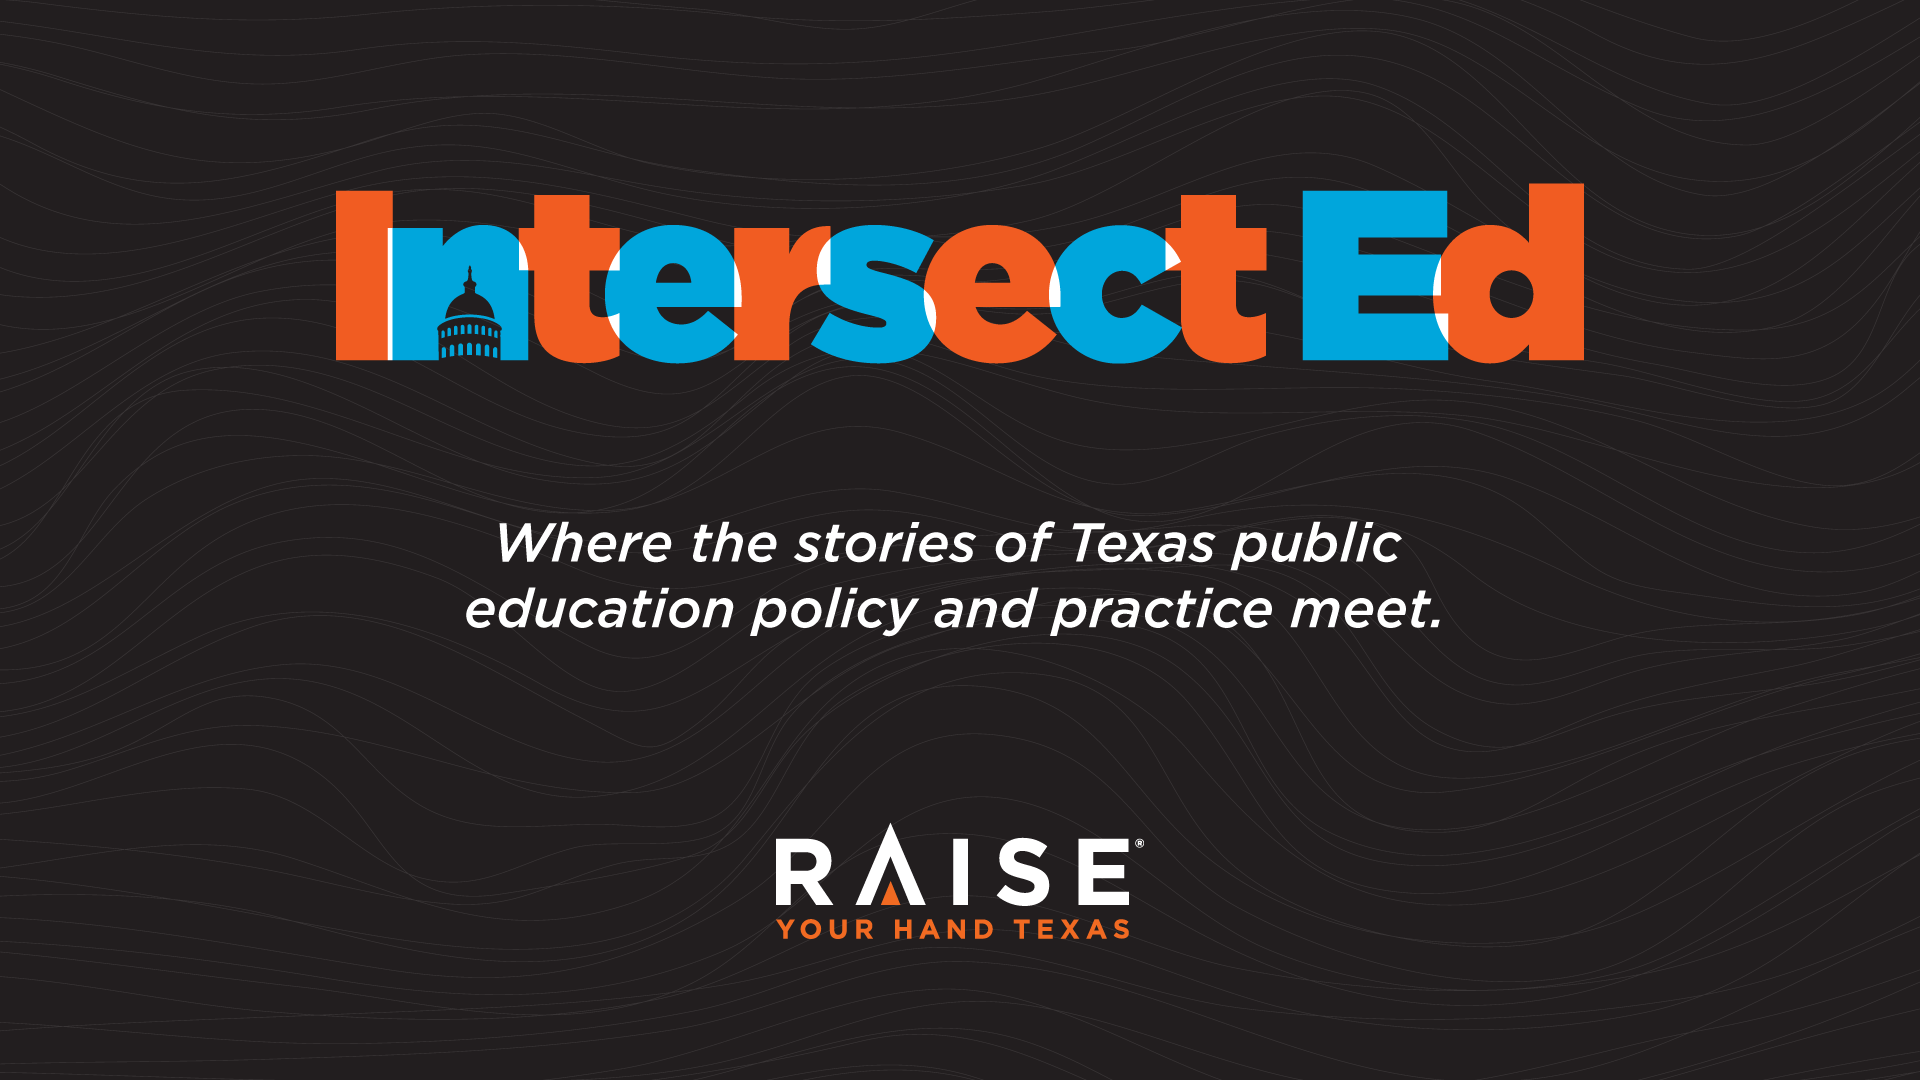 [Partner Program] Intersect Ed, where the stories of Texas public education policy and practice meet